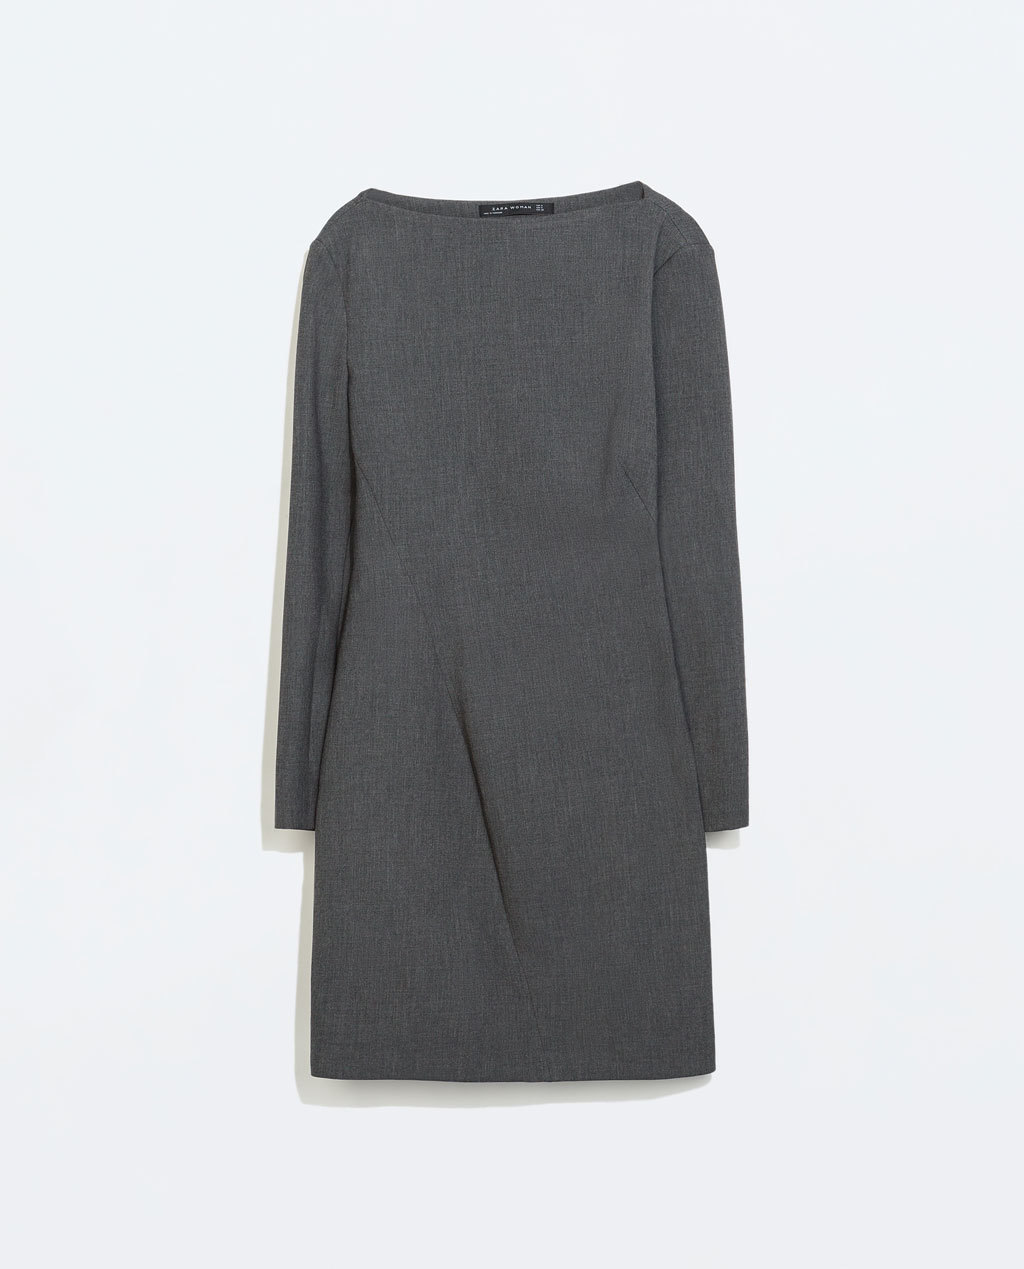 Seamed Boat Neck Dress - style: shift; length: mid thigh; neckline: slash/boat neckline; fit: tailored/fitted; pattern: plain; predominant colour: charcoal; occasions: casual, evening, work, creative work; fibres: polyester/polyamide - mix; sleeve length: long sleeve; sleeve style: standard; pattern type: fabric; texture group: jersey - stretchy/drapey; season: a/w 2014